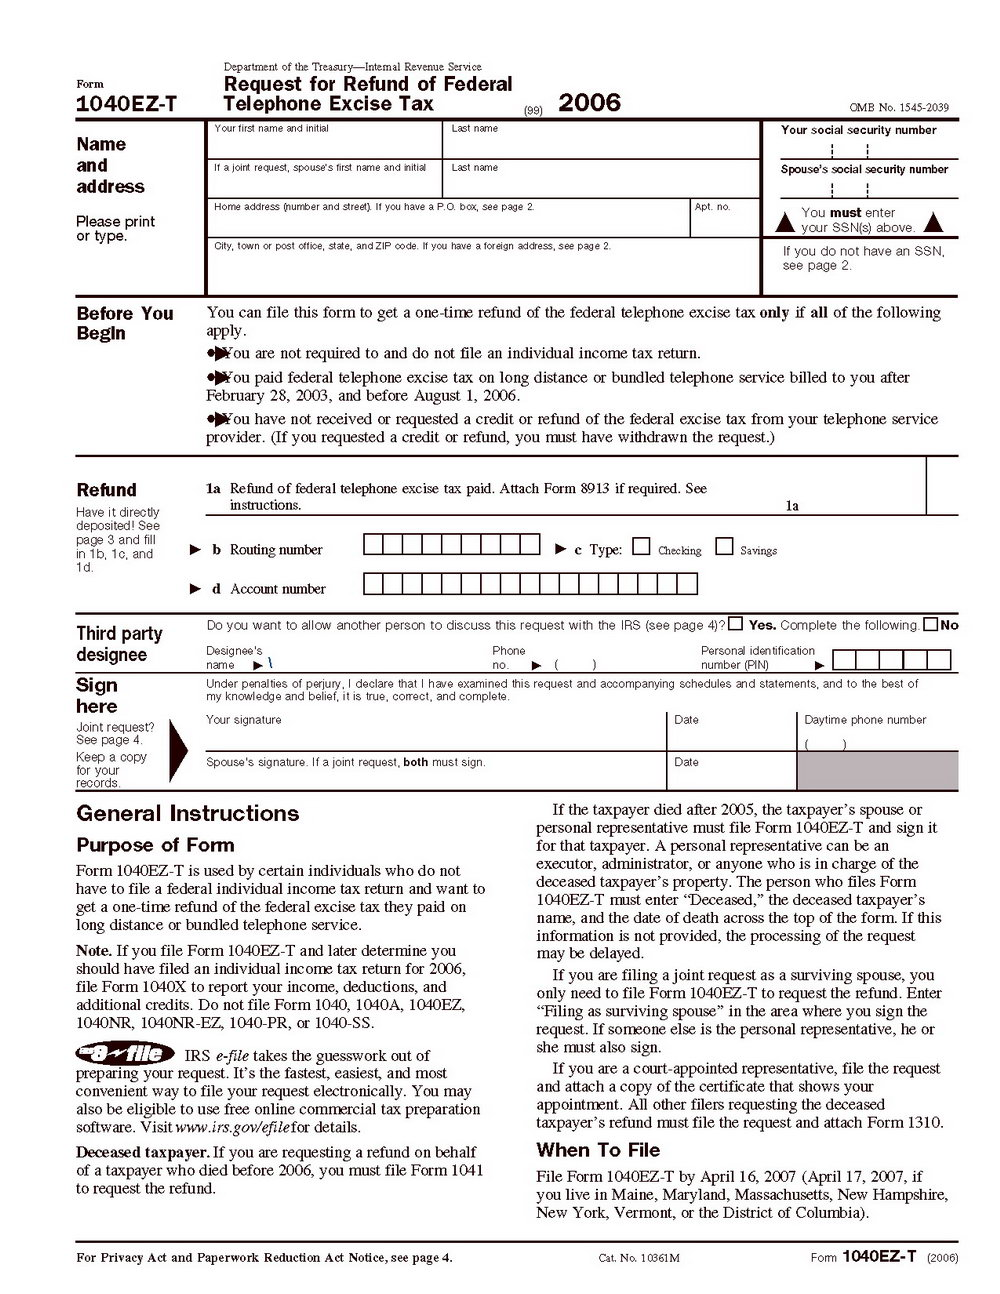 Fed Tax Form 1040a Instructions